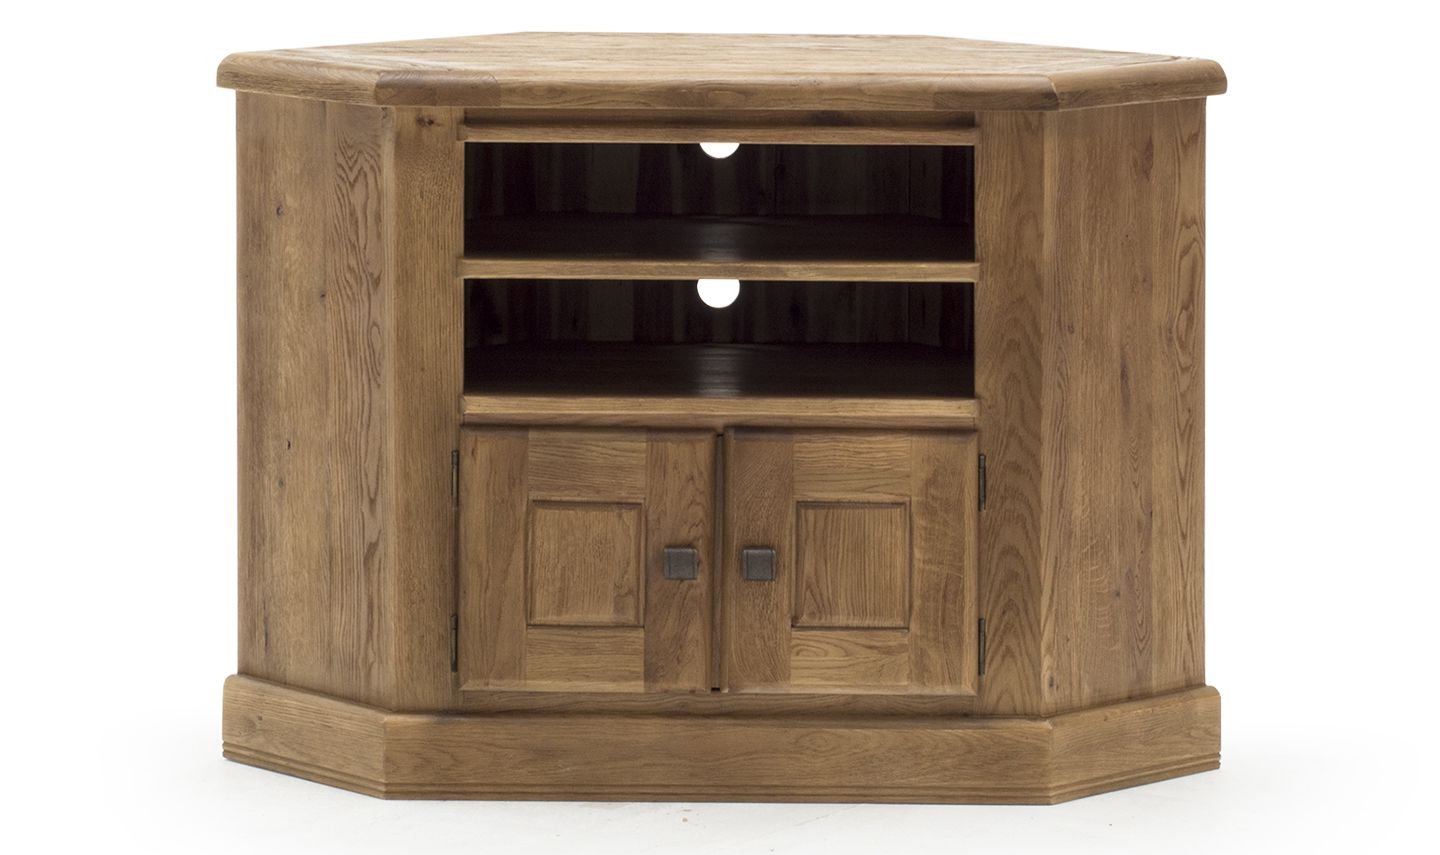 Widely Used Sorrento Rustic Solid Oak Corner Tv Unit 18Vd364 For Rustic Corner Tv Cabinets (View 20 of 20)